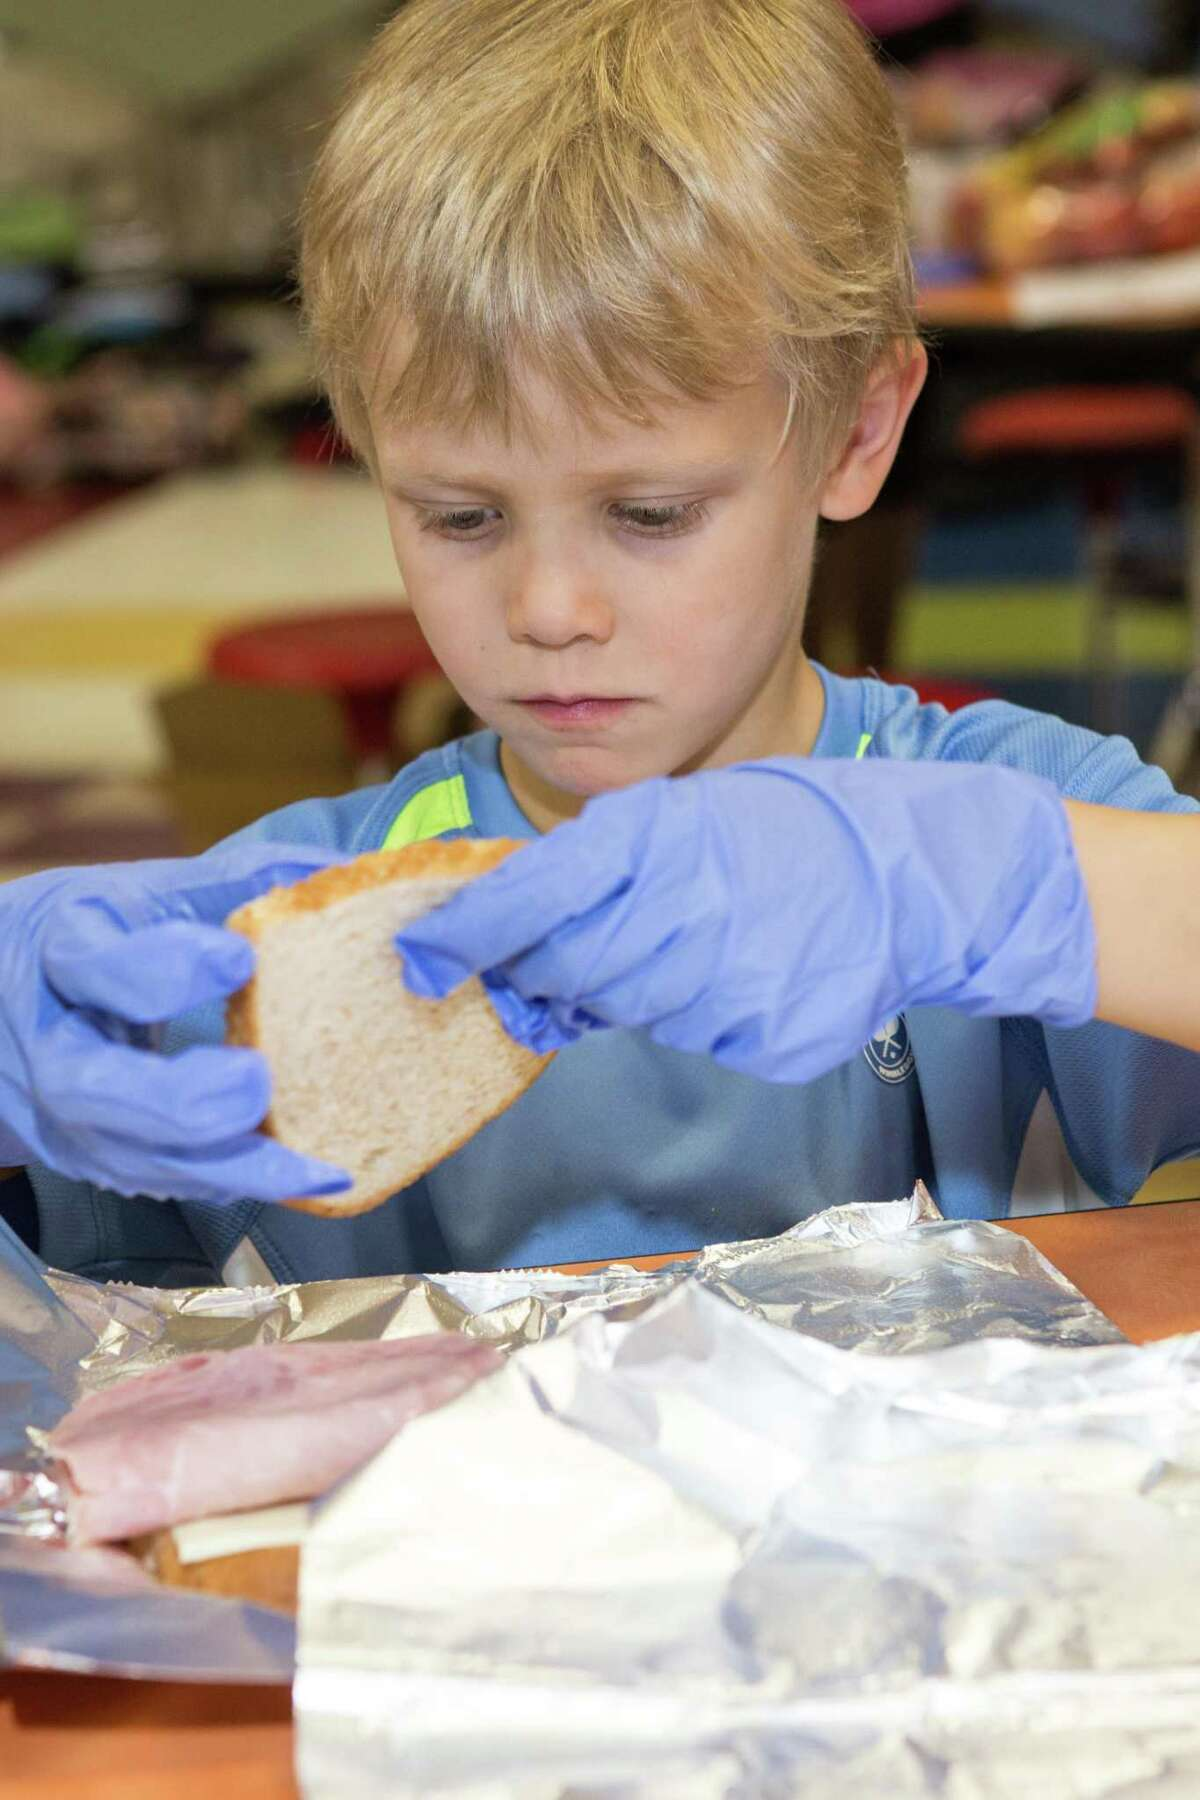 Kindergartener Hudson Schunkl is focused on the task of making a ham sandwich during a Stratfield School community-service project on May 1.